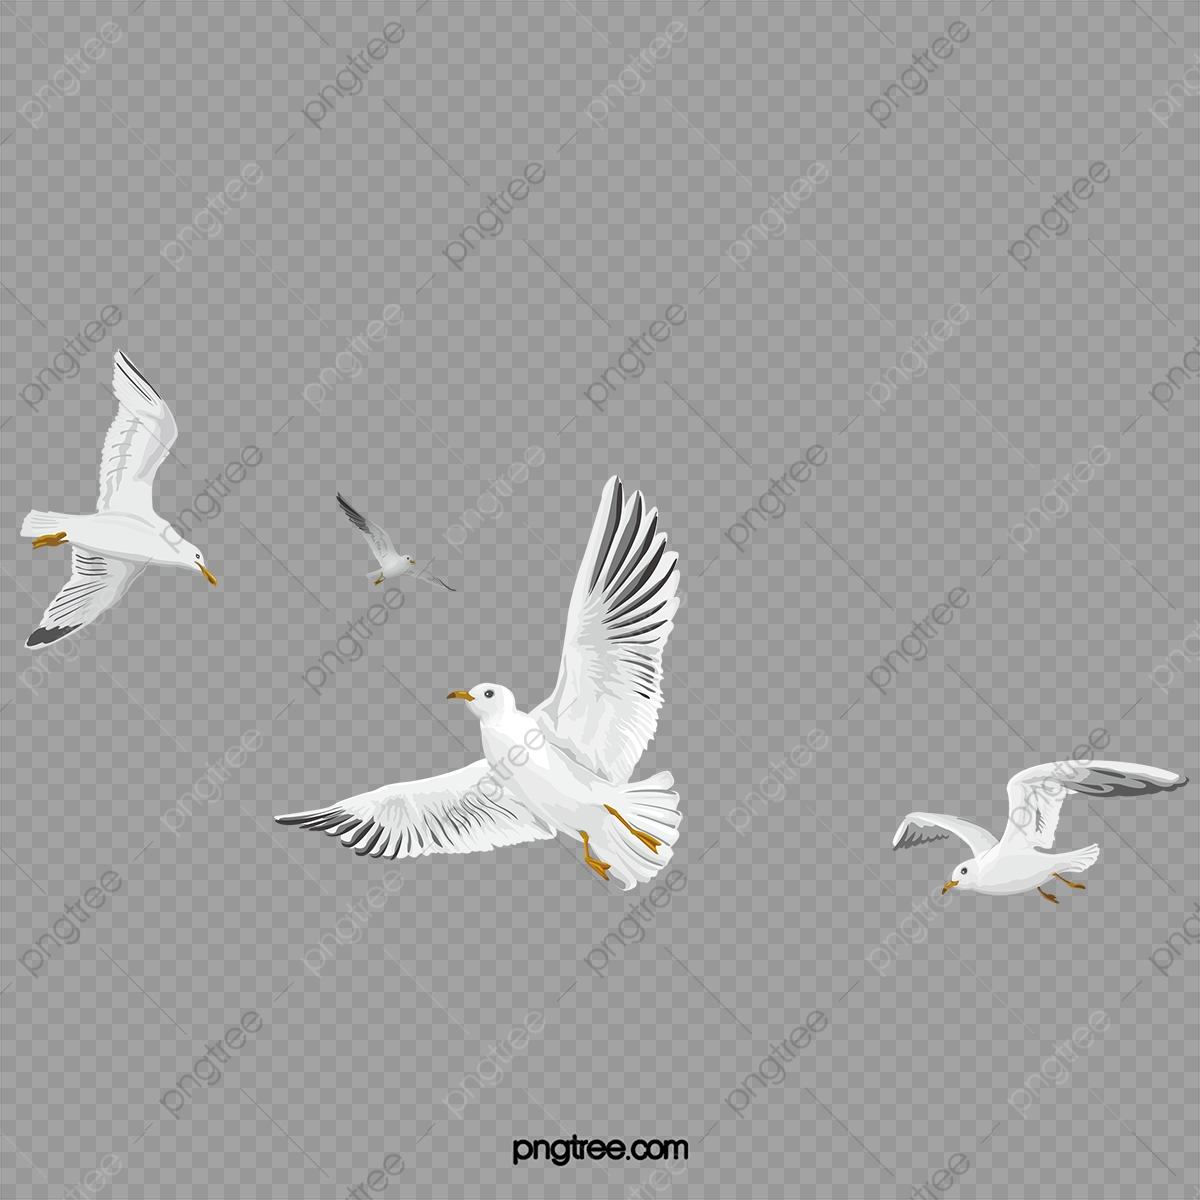 Flying Birds Fly Birds Flying Clipart Png Transparent Clipart Image And Psd File For Free Download